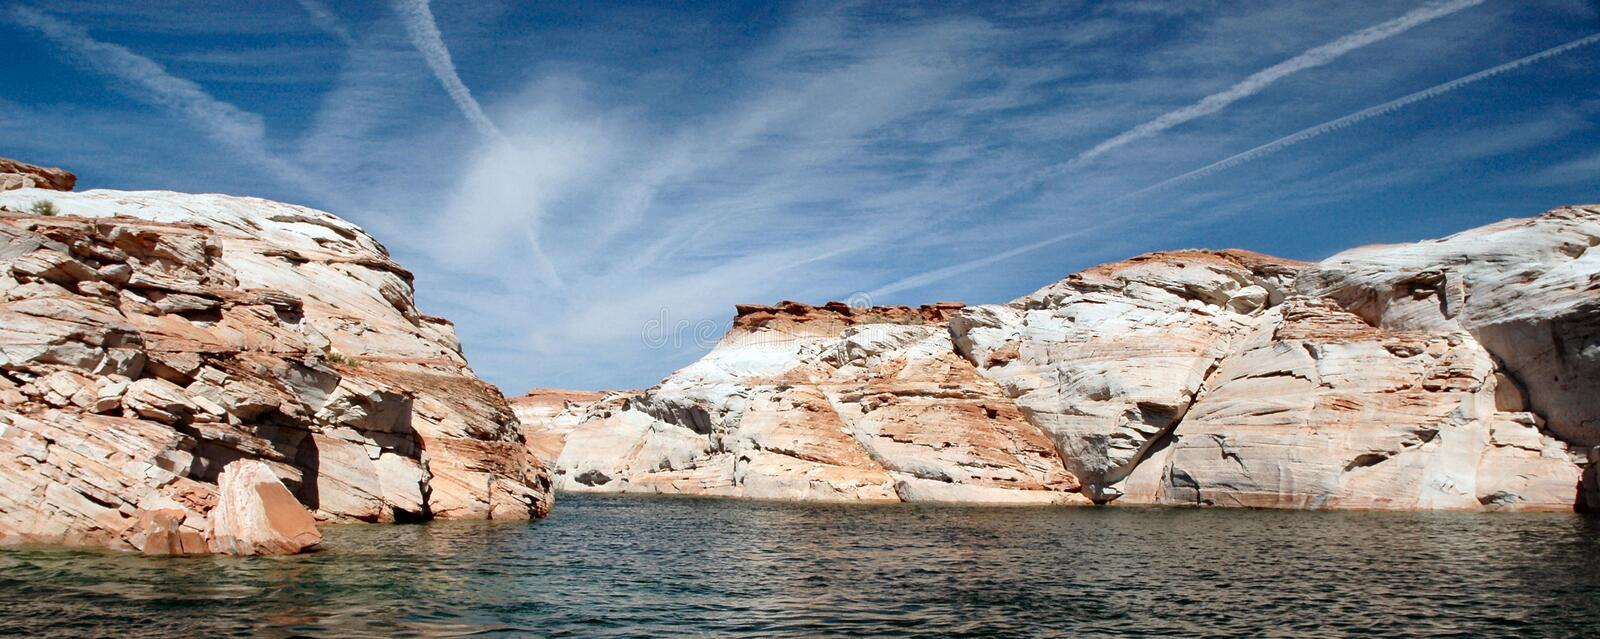 Lake Powell from the water royalty free stock photography